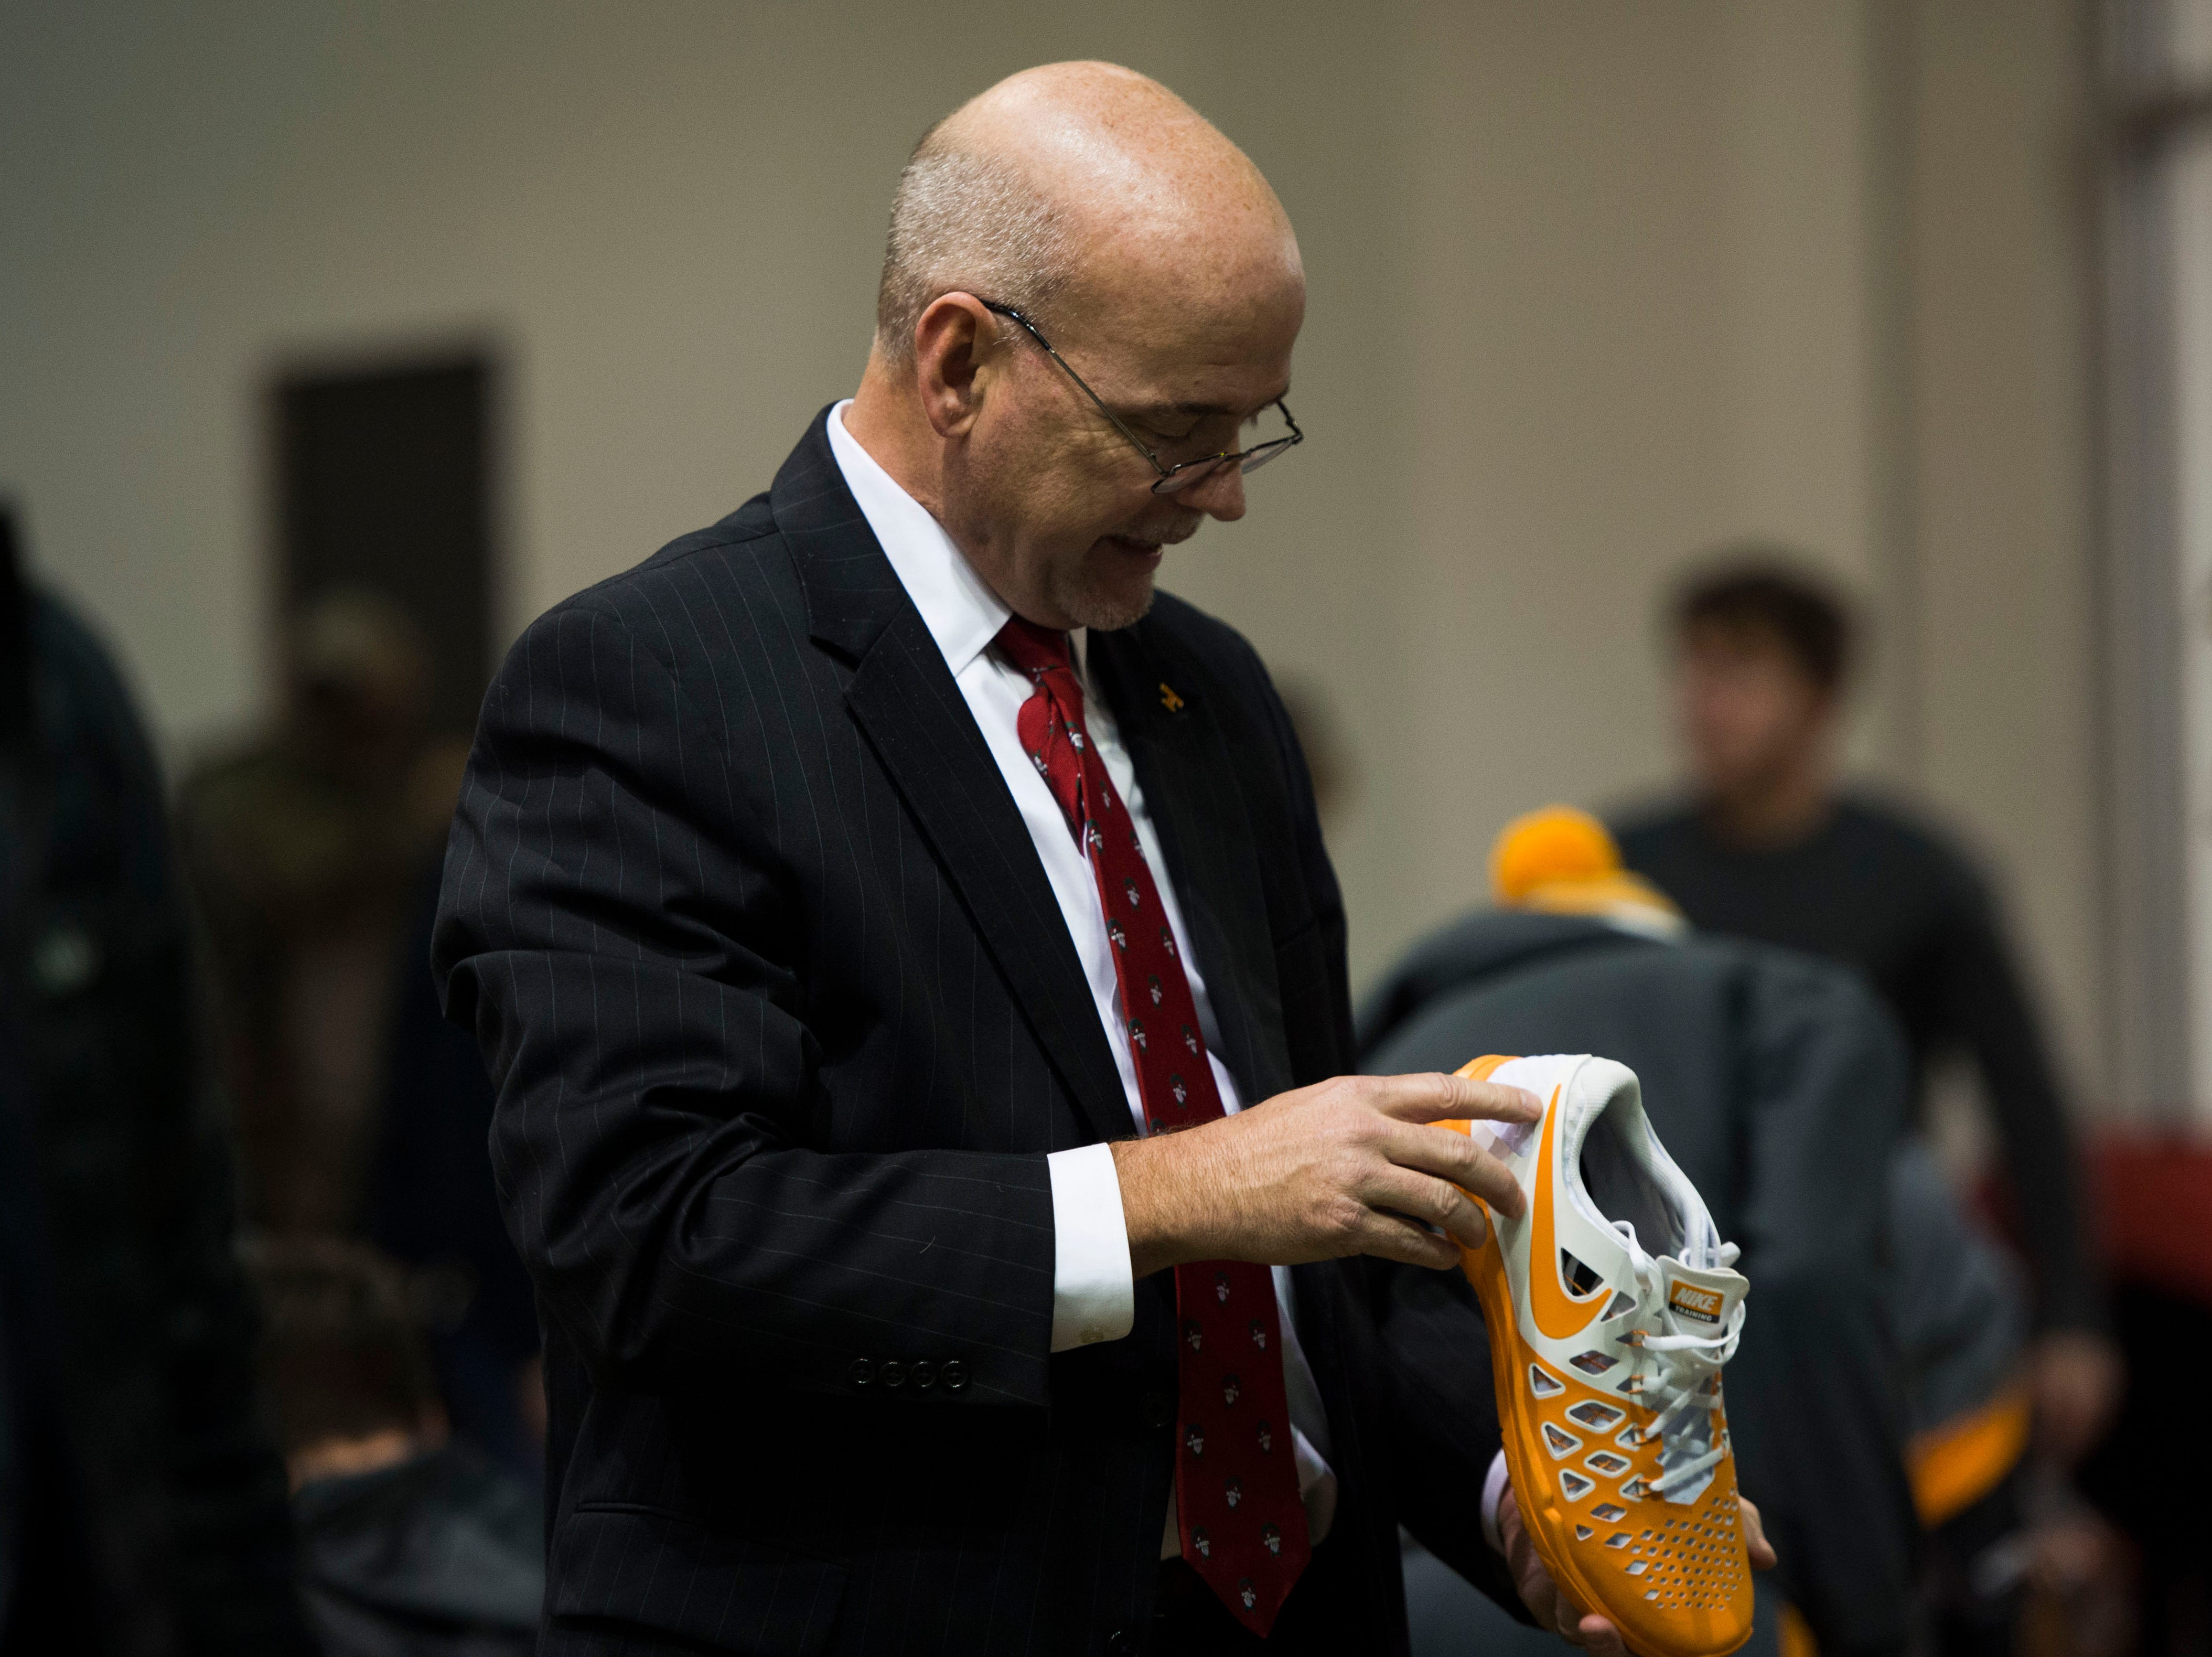 Joel Reeves, of Knoxville, looks at a pair of sneaks while shopping for athletic apparel on Tennessee football's indoor practice field during University of Tennessee Athletic Department's inventory sale Wednesday, Dec. 12, 2018. Helmets and jerseys were sold along side the discount gear for hundreds of dollars.